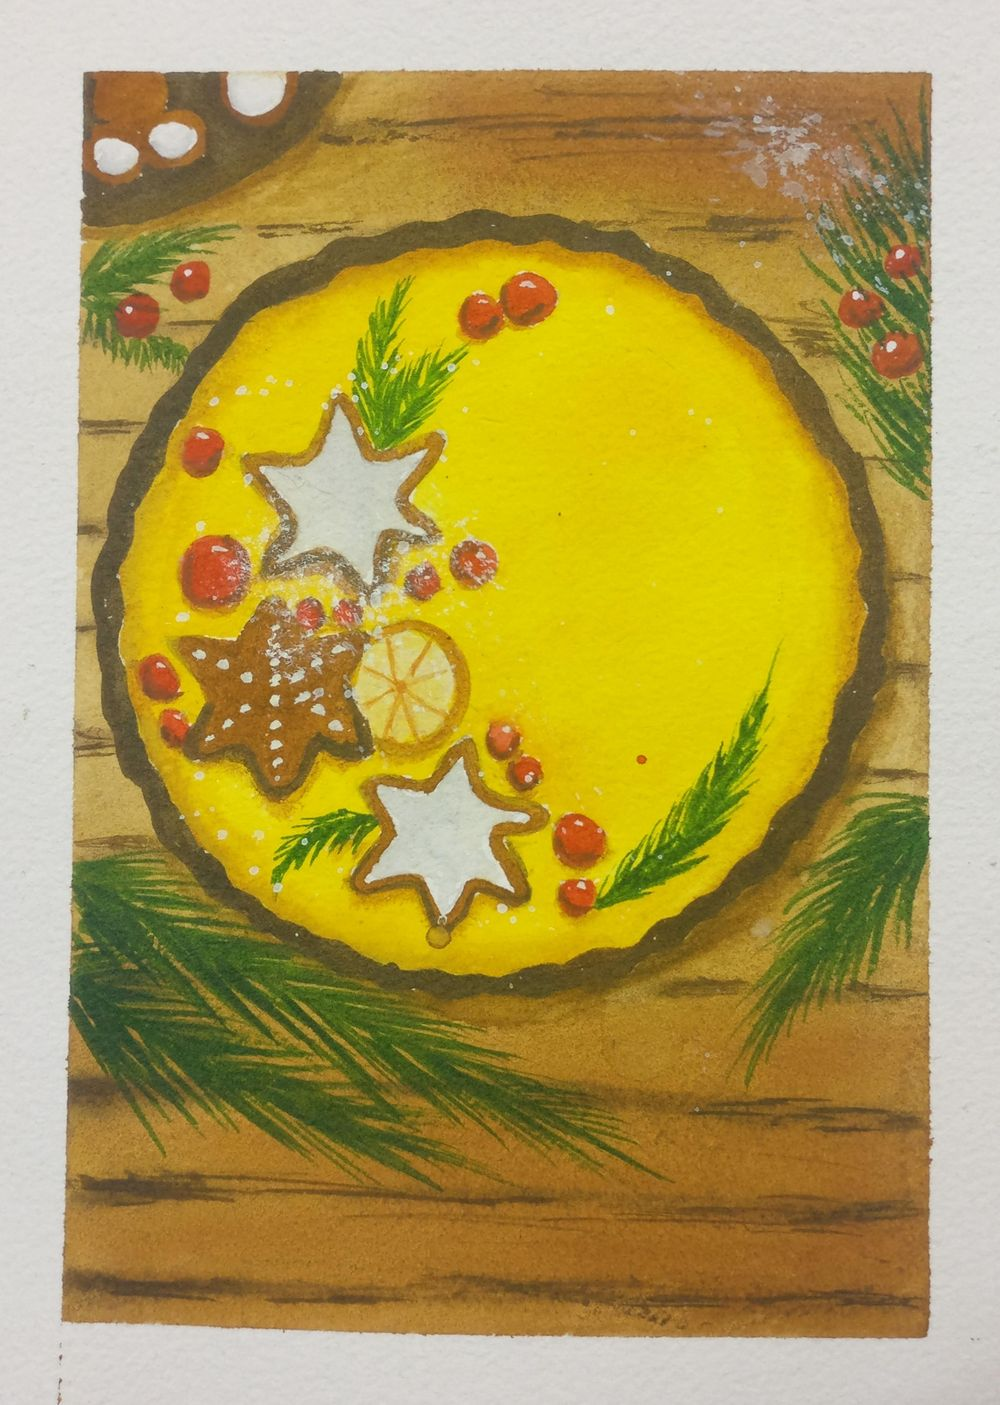 Christmas with watercolors - image 10 - student project